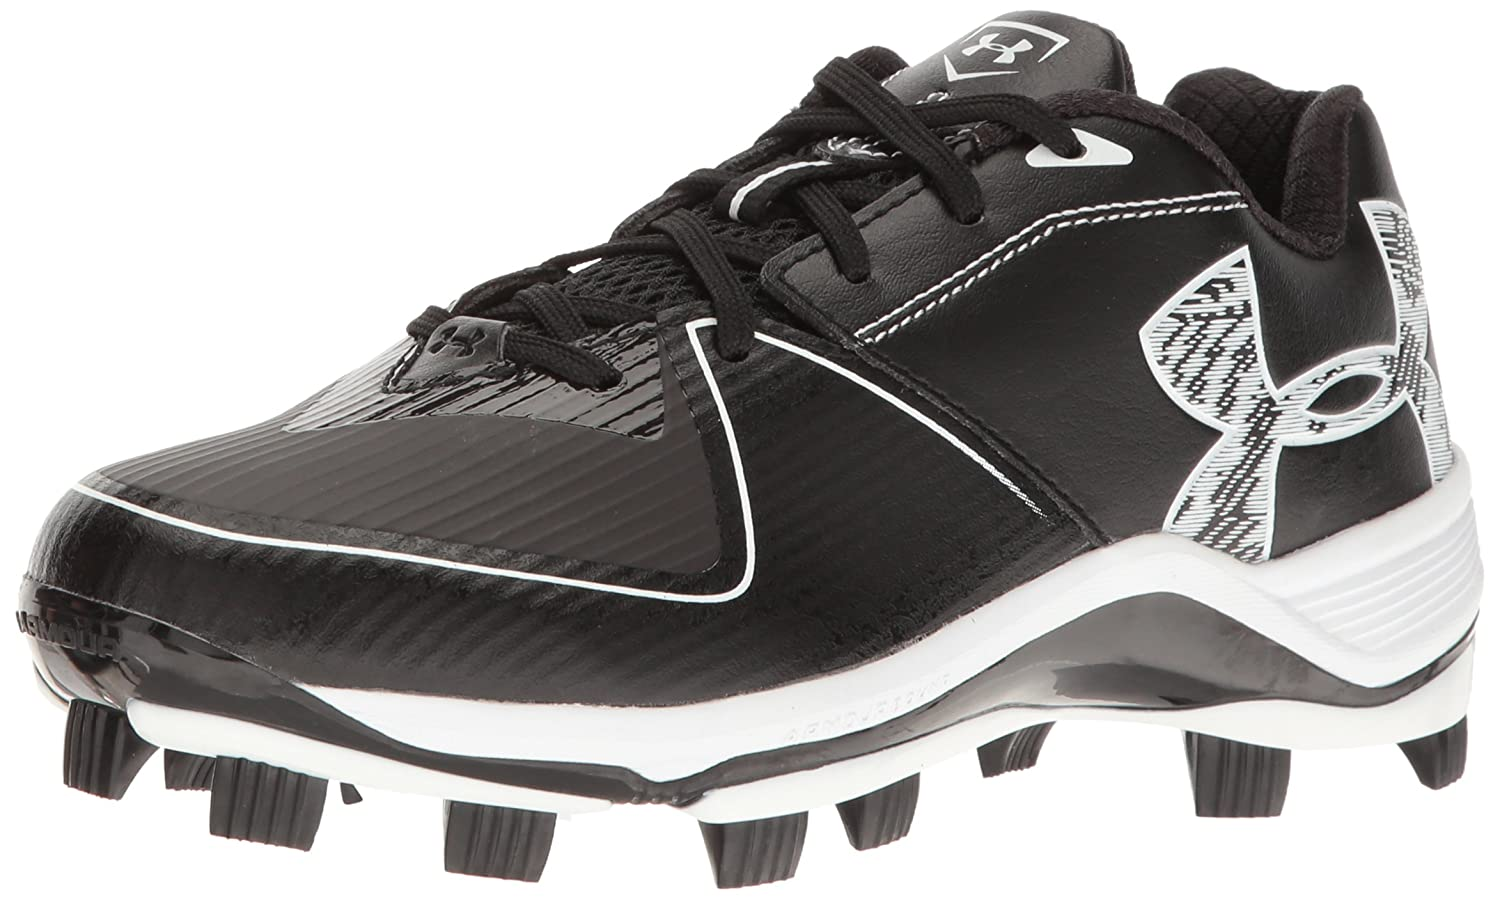 Under Armour Women's Glyde TPU Softball Shoe, Black/Black B01D3RYMXC 6.5 M US|Black (001)/Black